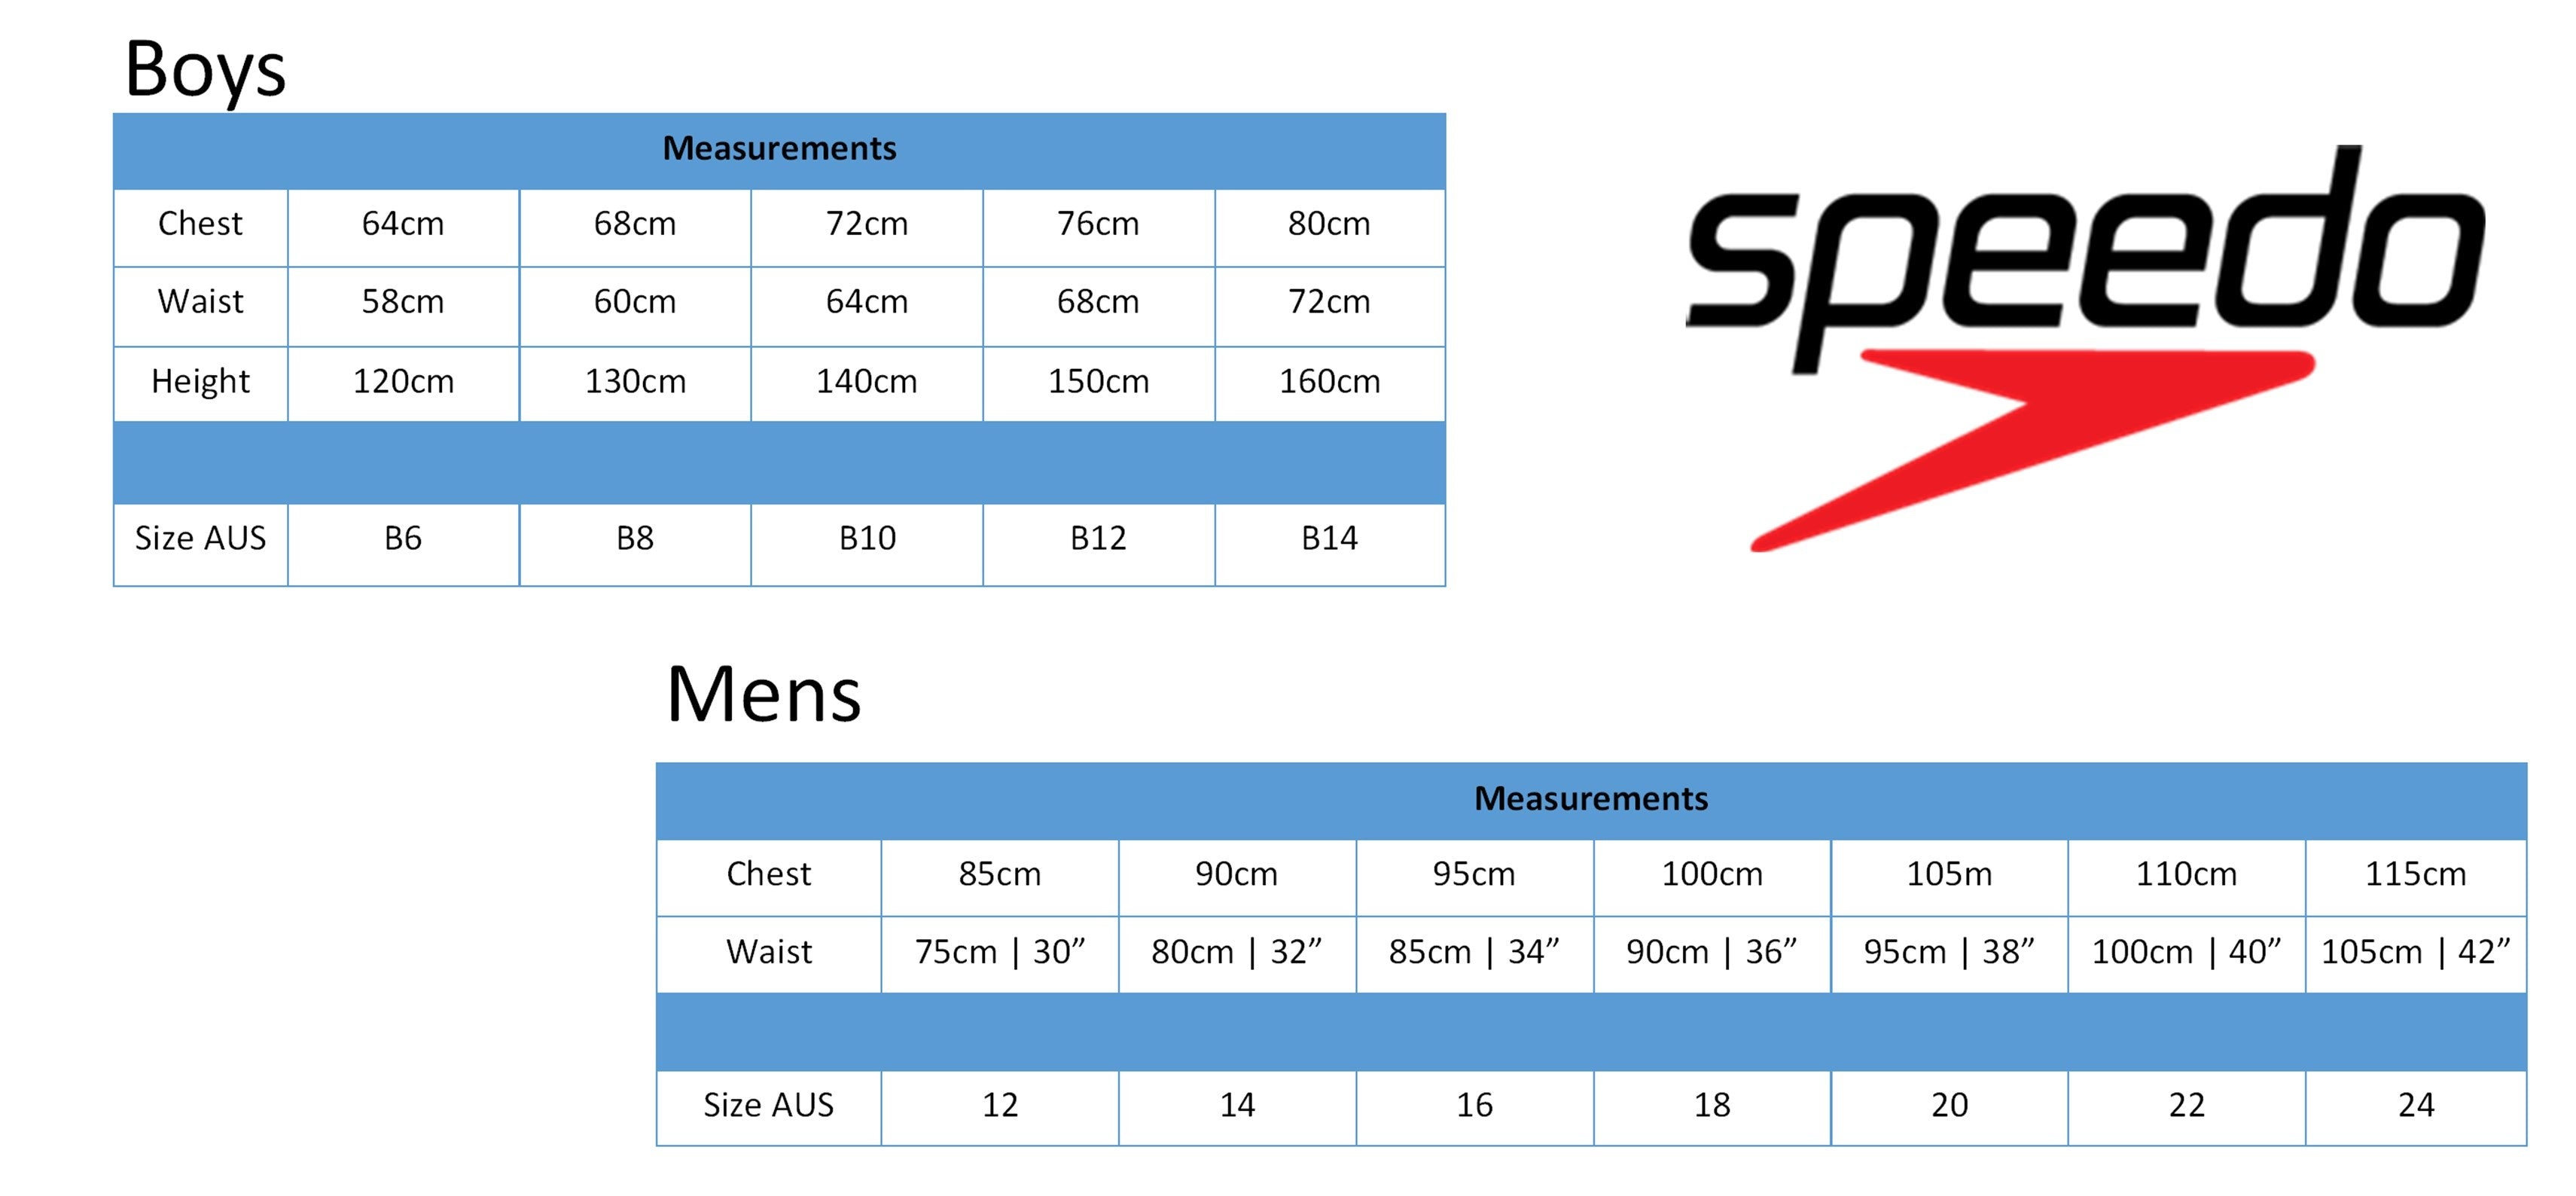 Speedo Male size